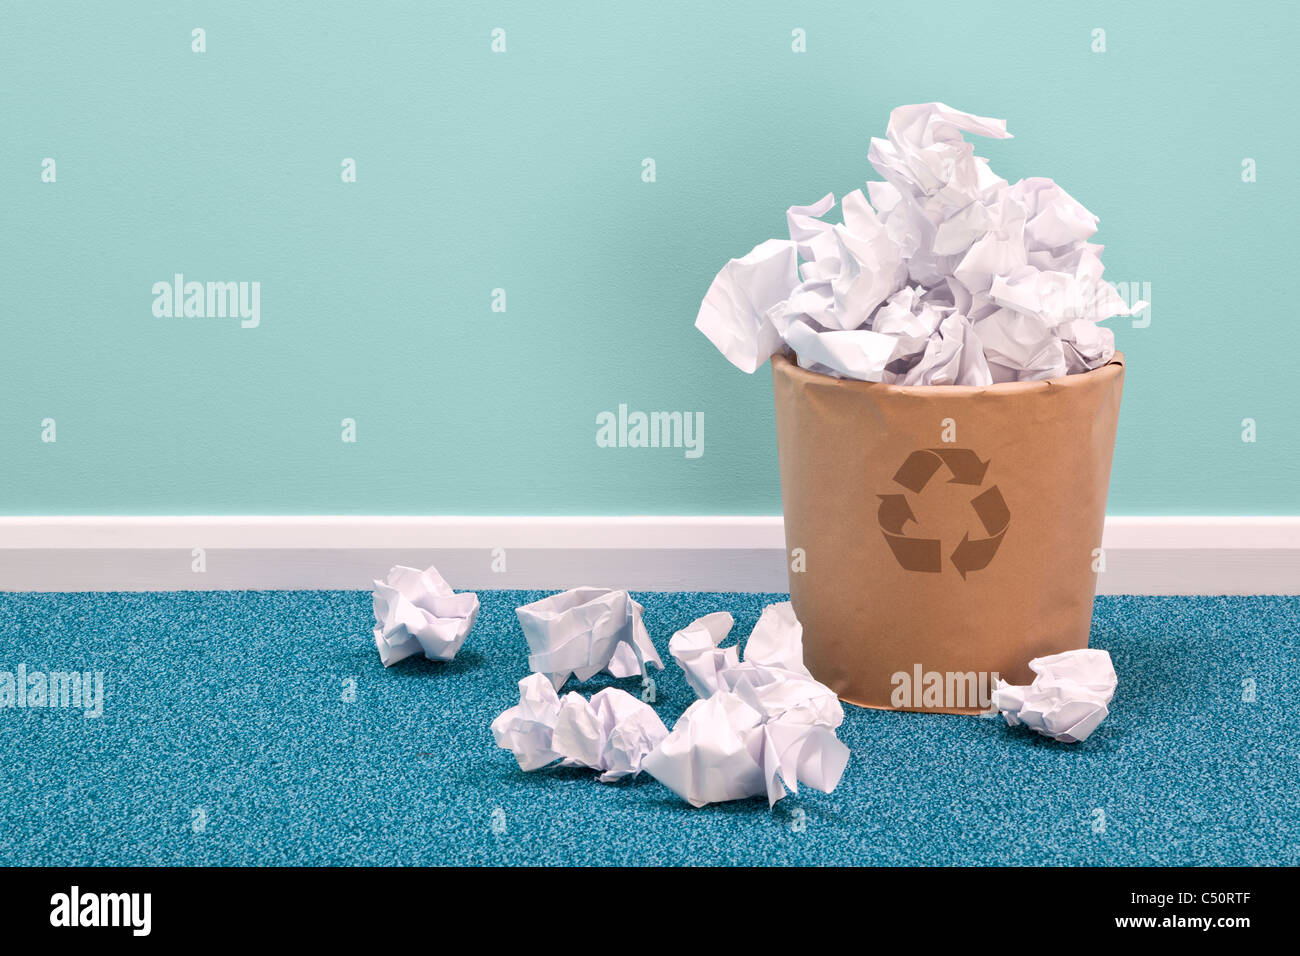 Photo of a recycling waste paper basket on an office floor - Stock Image